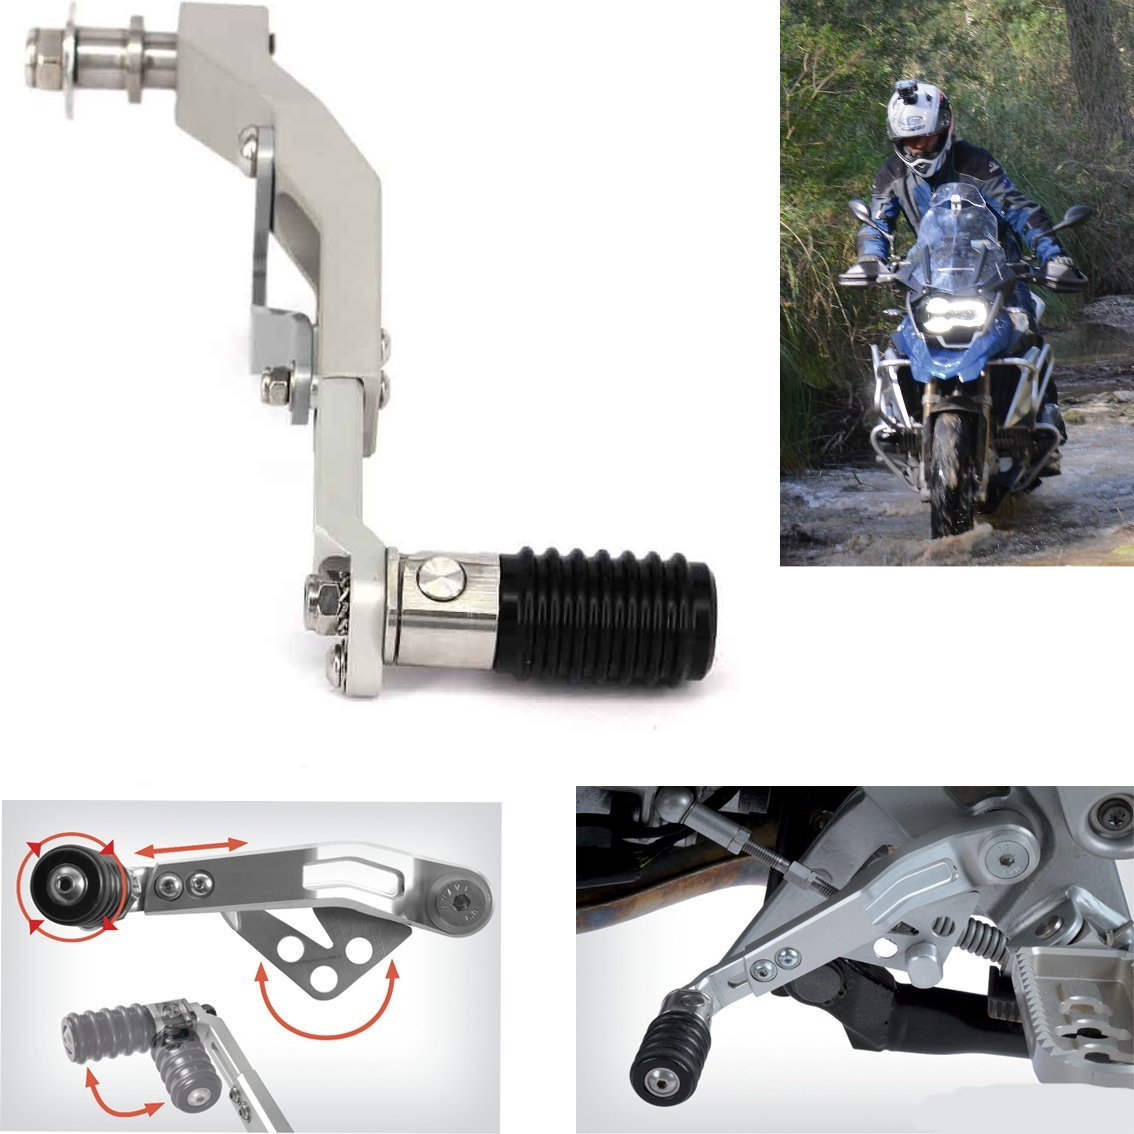 Motorcycle Silver /Black/Titanium Adjust Lever Gear Shift Lever For BMW R1200GS LC 13-16 R1200GS ADV 2014-2016 (Silver)